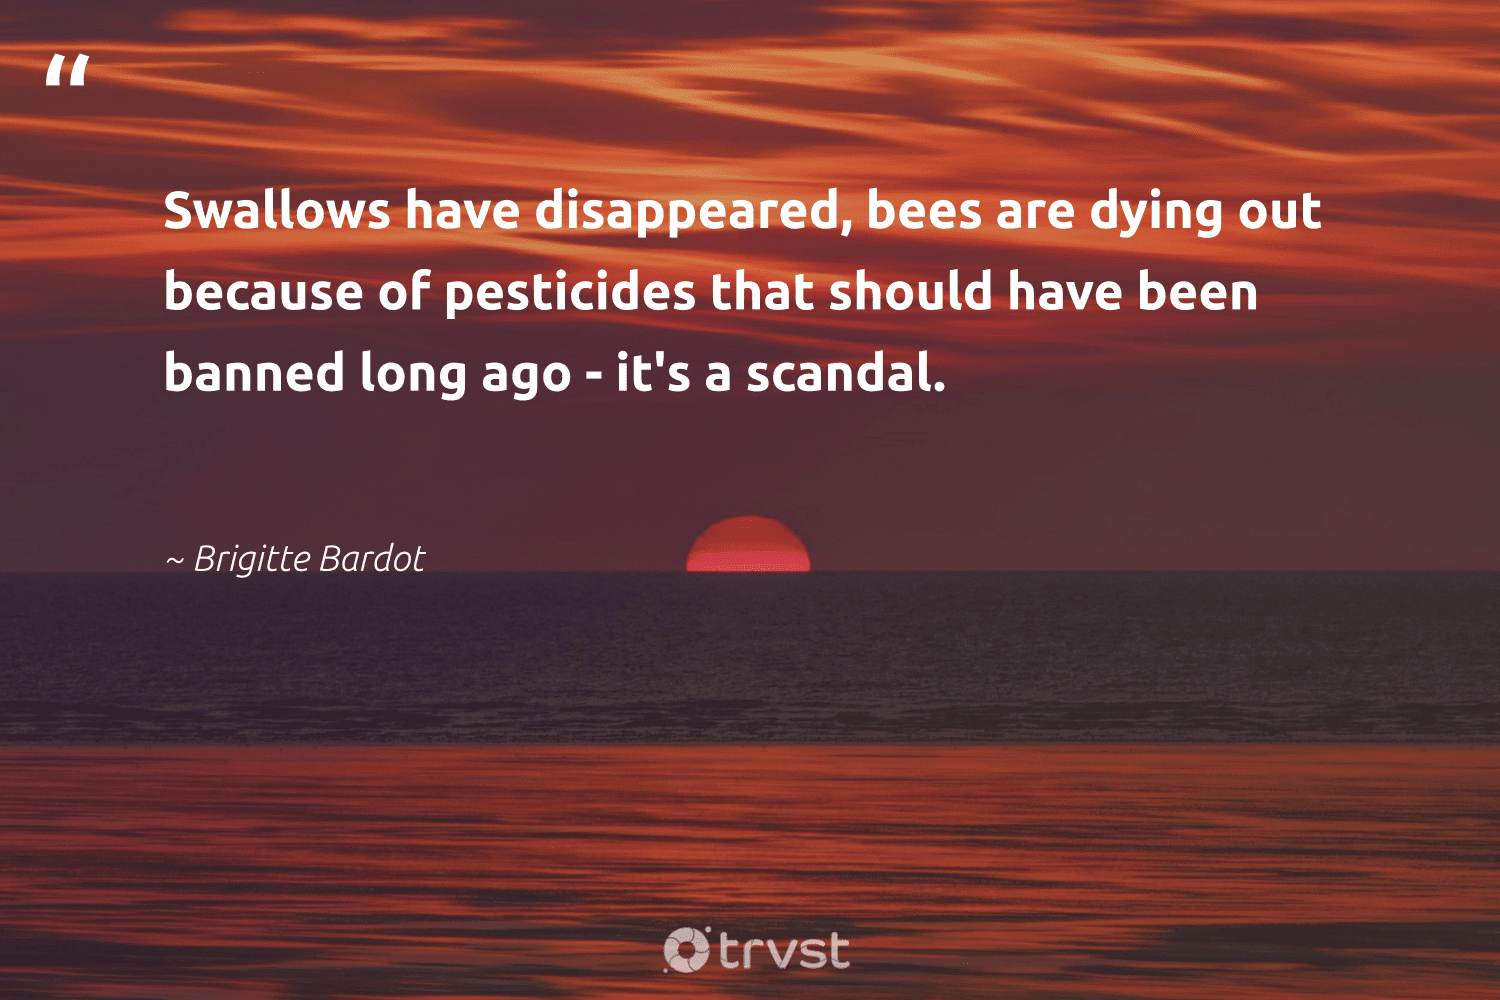 """""""Swallows have disappeared, bees are dying out because of pesticides that should have been banned long ago - it's a scandal.""""  - Brigitte Bardot #trvst #quotes #bees #beeswax #pollinators #natural #changetheworld #savethebees #nature #biology #socialchange #beekeeping"""